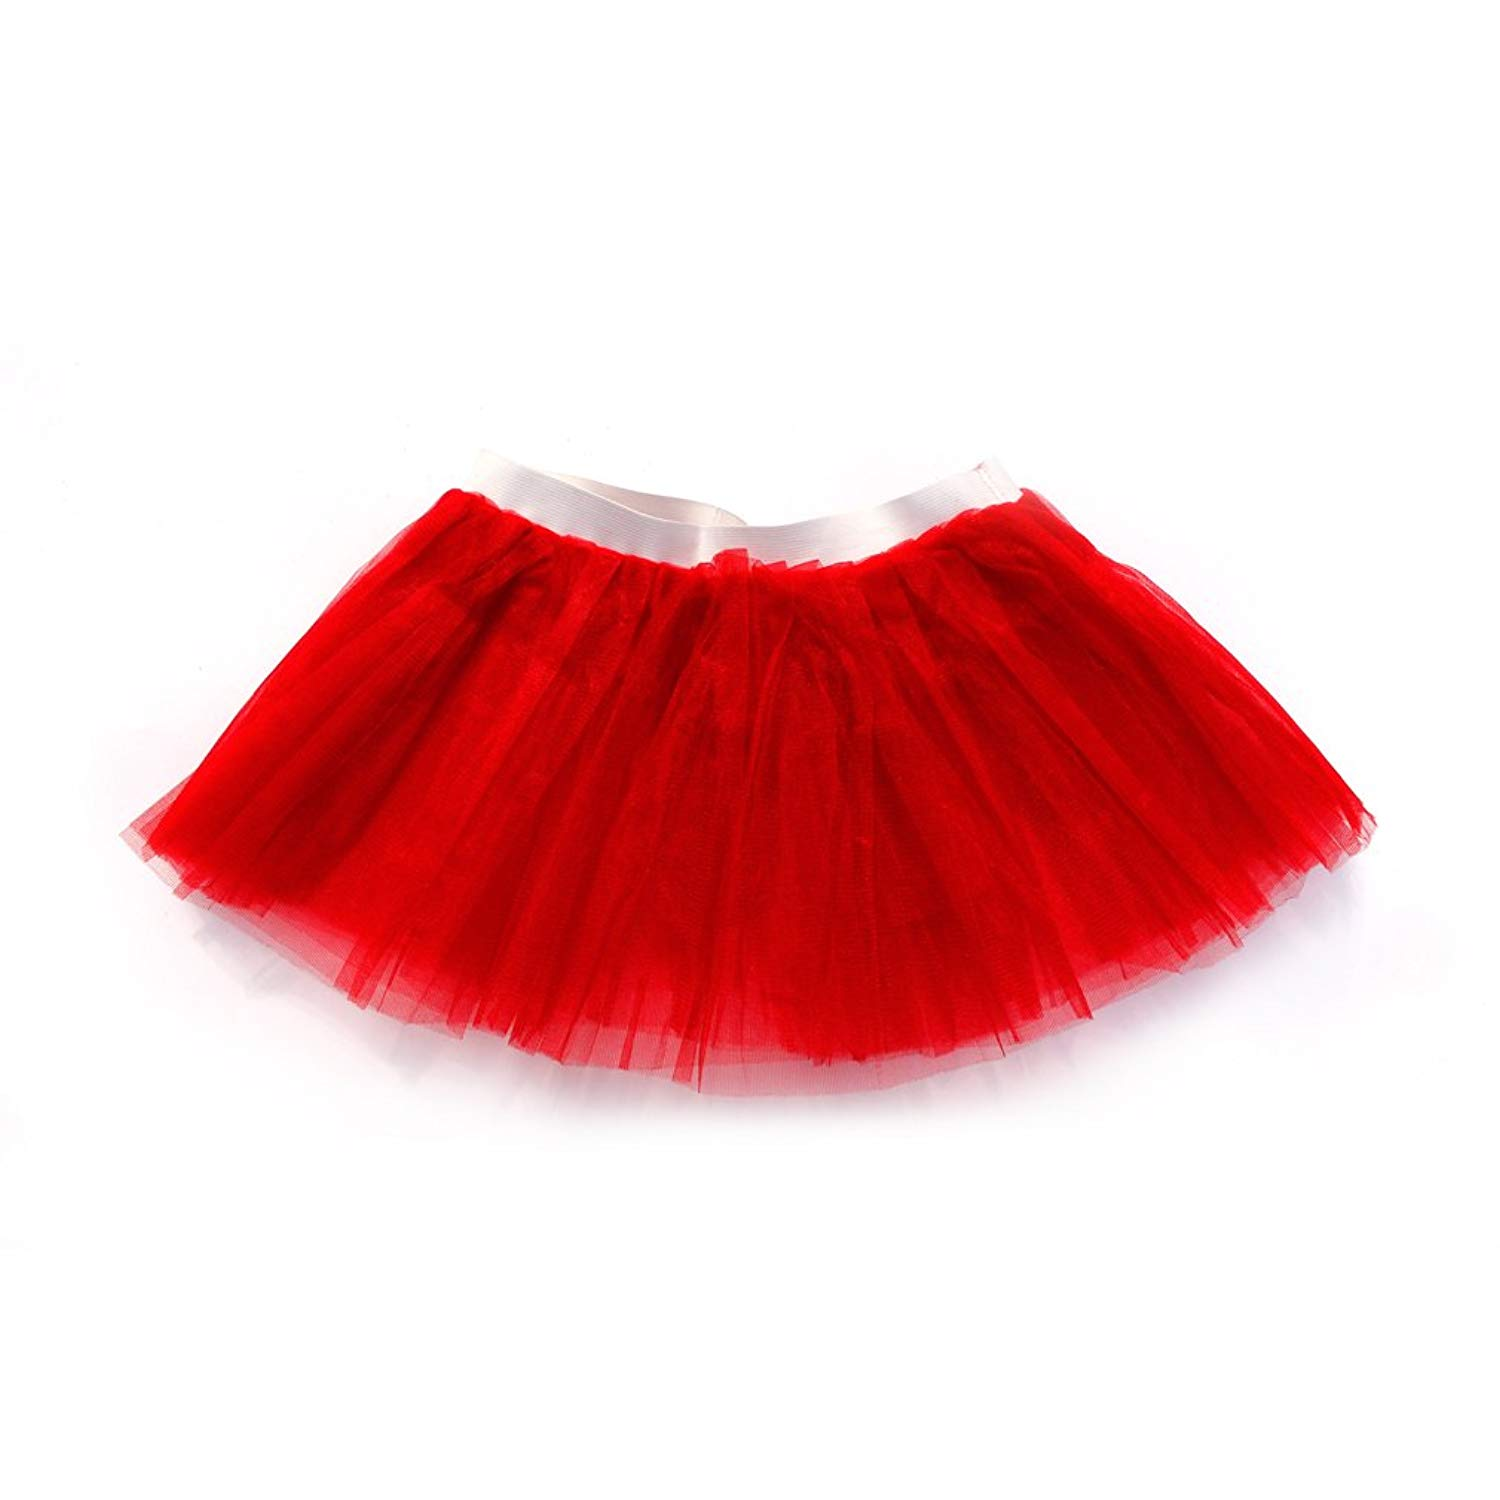 8322bffbb Get Quotations · Dreamdanceworks Running Skirt Teen or Adult Size 5K Rave  Dance or Race Tutu